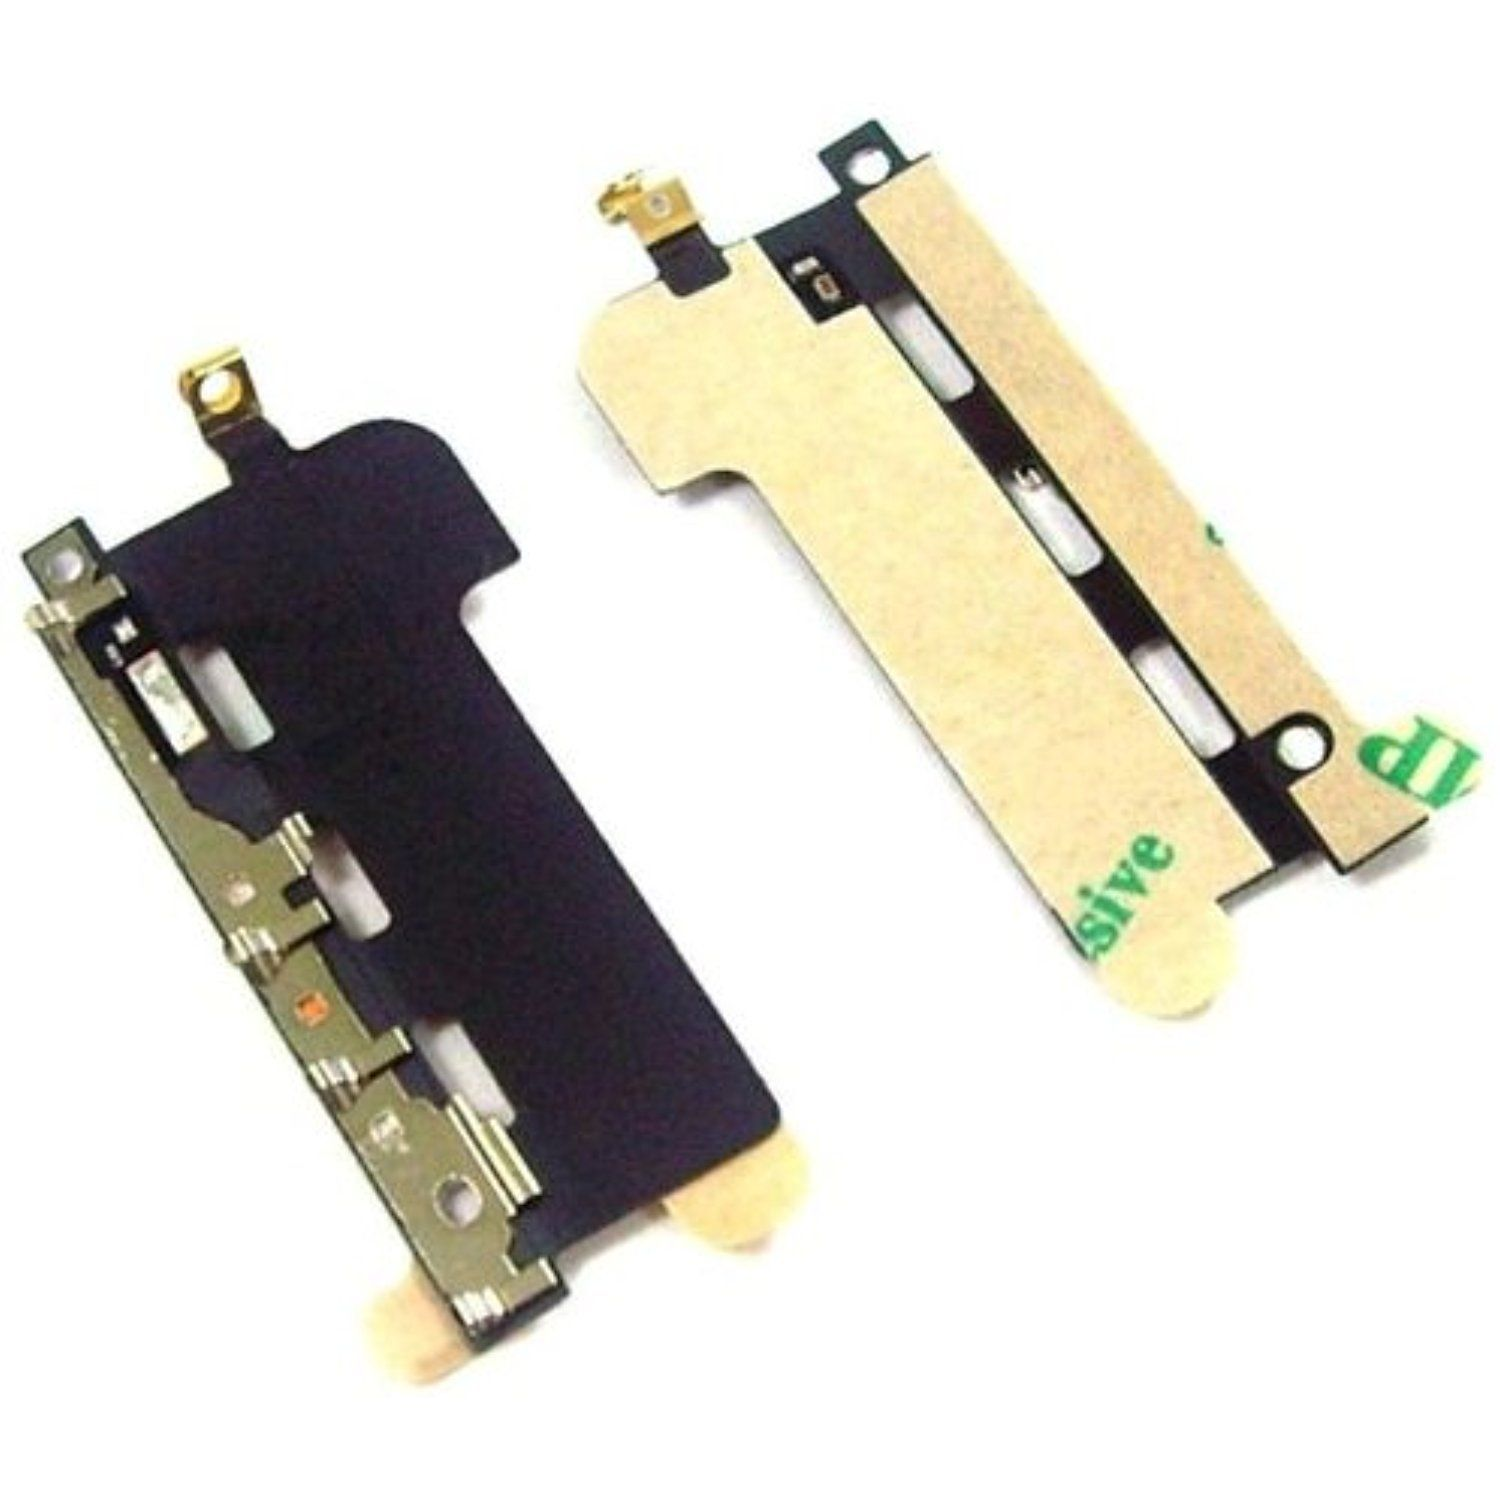 Iphone 4 Ribbon Cable Diagram Trusted Wiring Logic Board Wifi Antenna Signal Flex For At Accessories